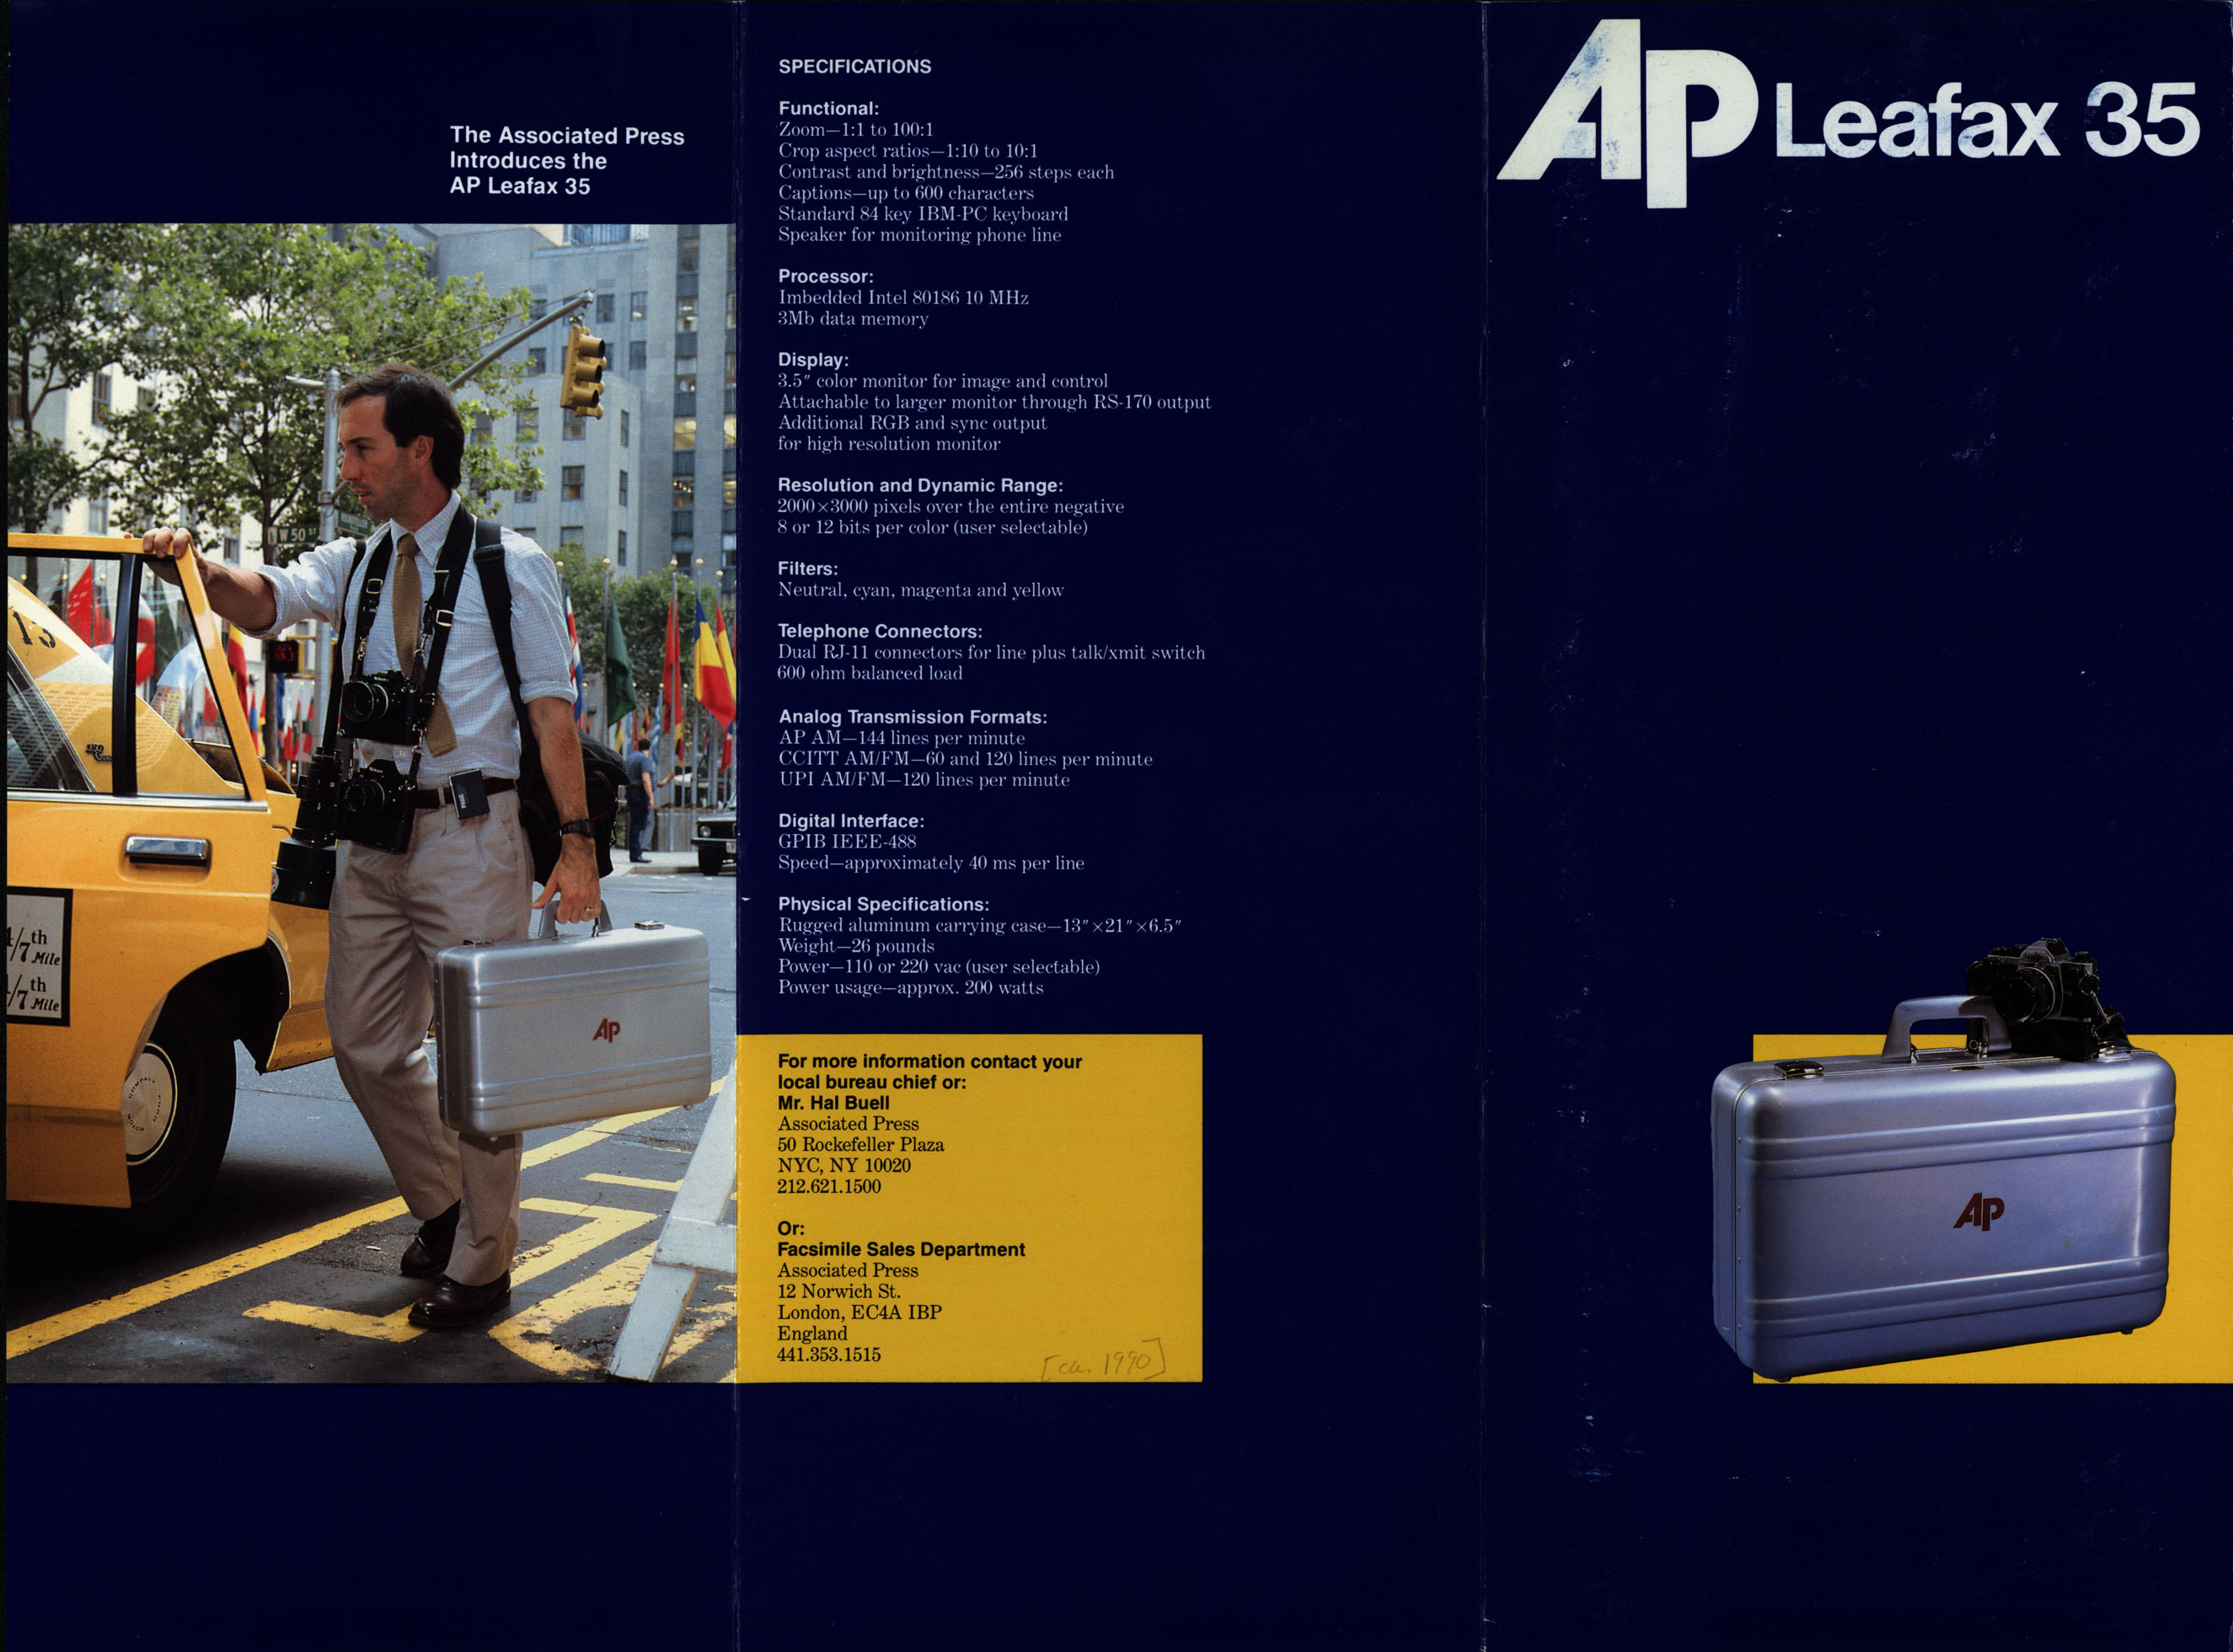 Promotional brochure announcing the AP Leafax 35, a picture transmitter that requires only a negative to transmit photographic images, from 1988.